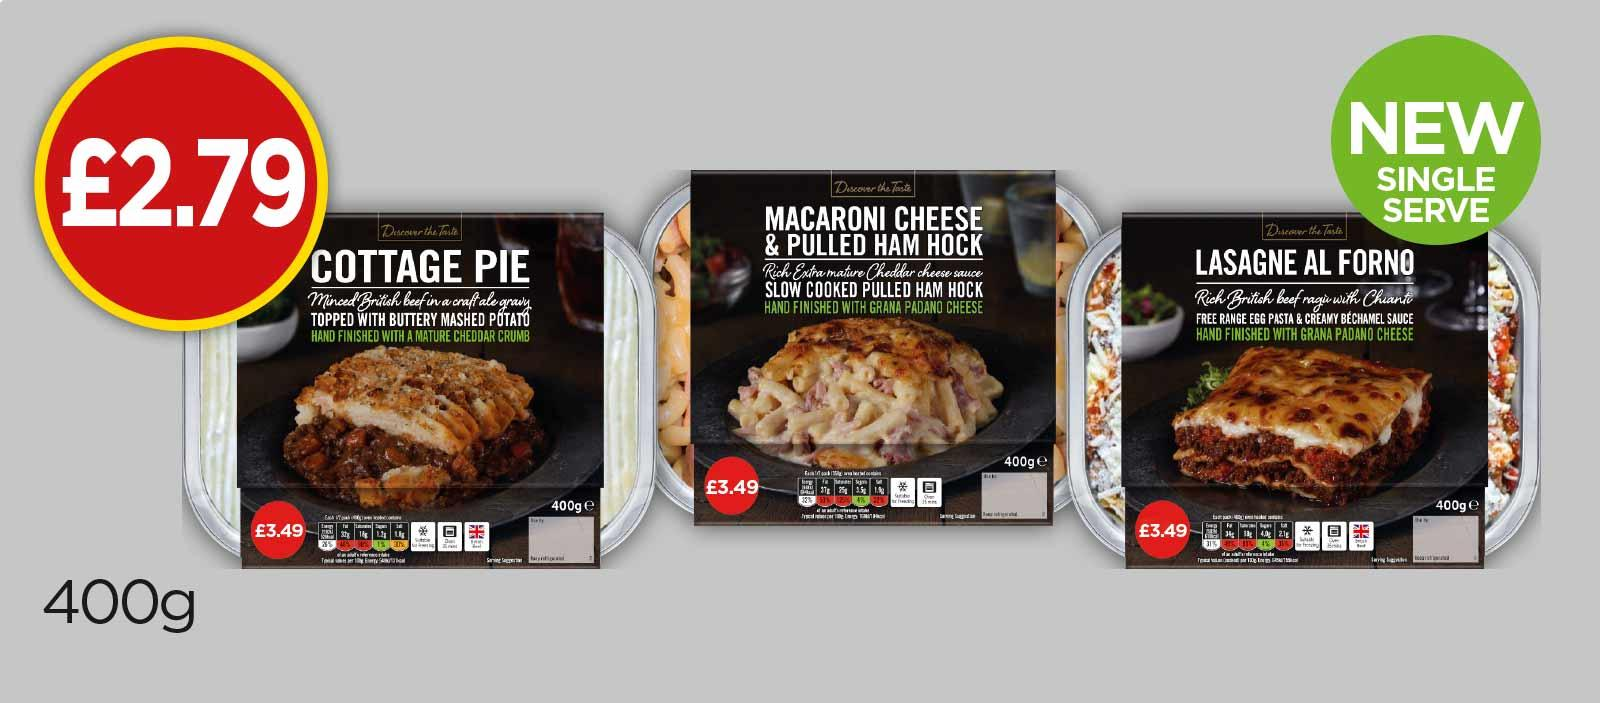 Discover The Taste Beef Lasagne Al Forno, Cottage Pie With Ale, Pulled Ham Mac & Cheese - £2.79 at Budgens